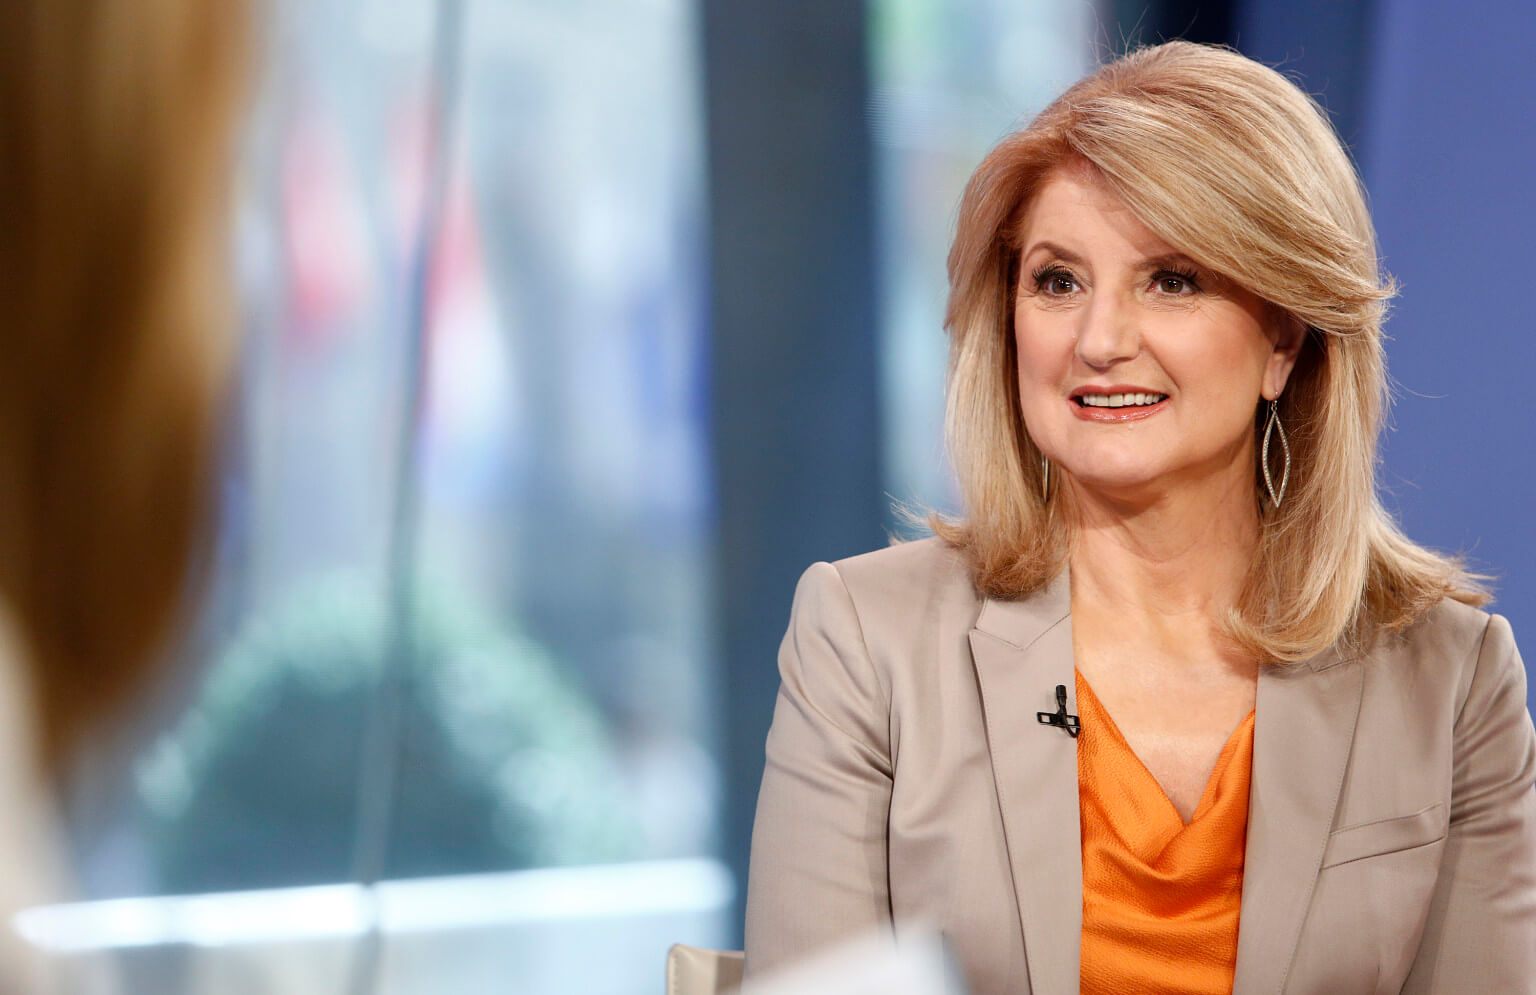 Ariana Huffington entrepreneurs, writer, ex owner of huffington post